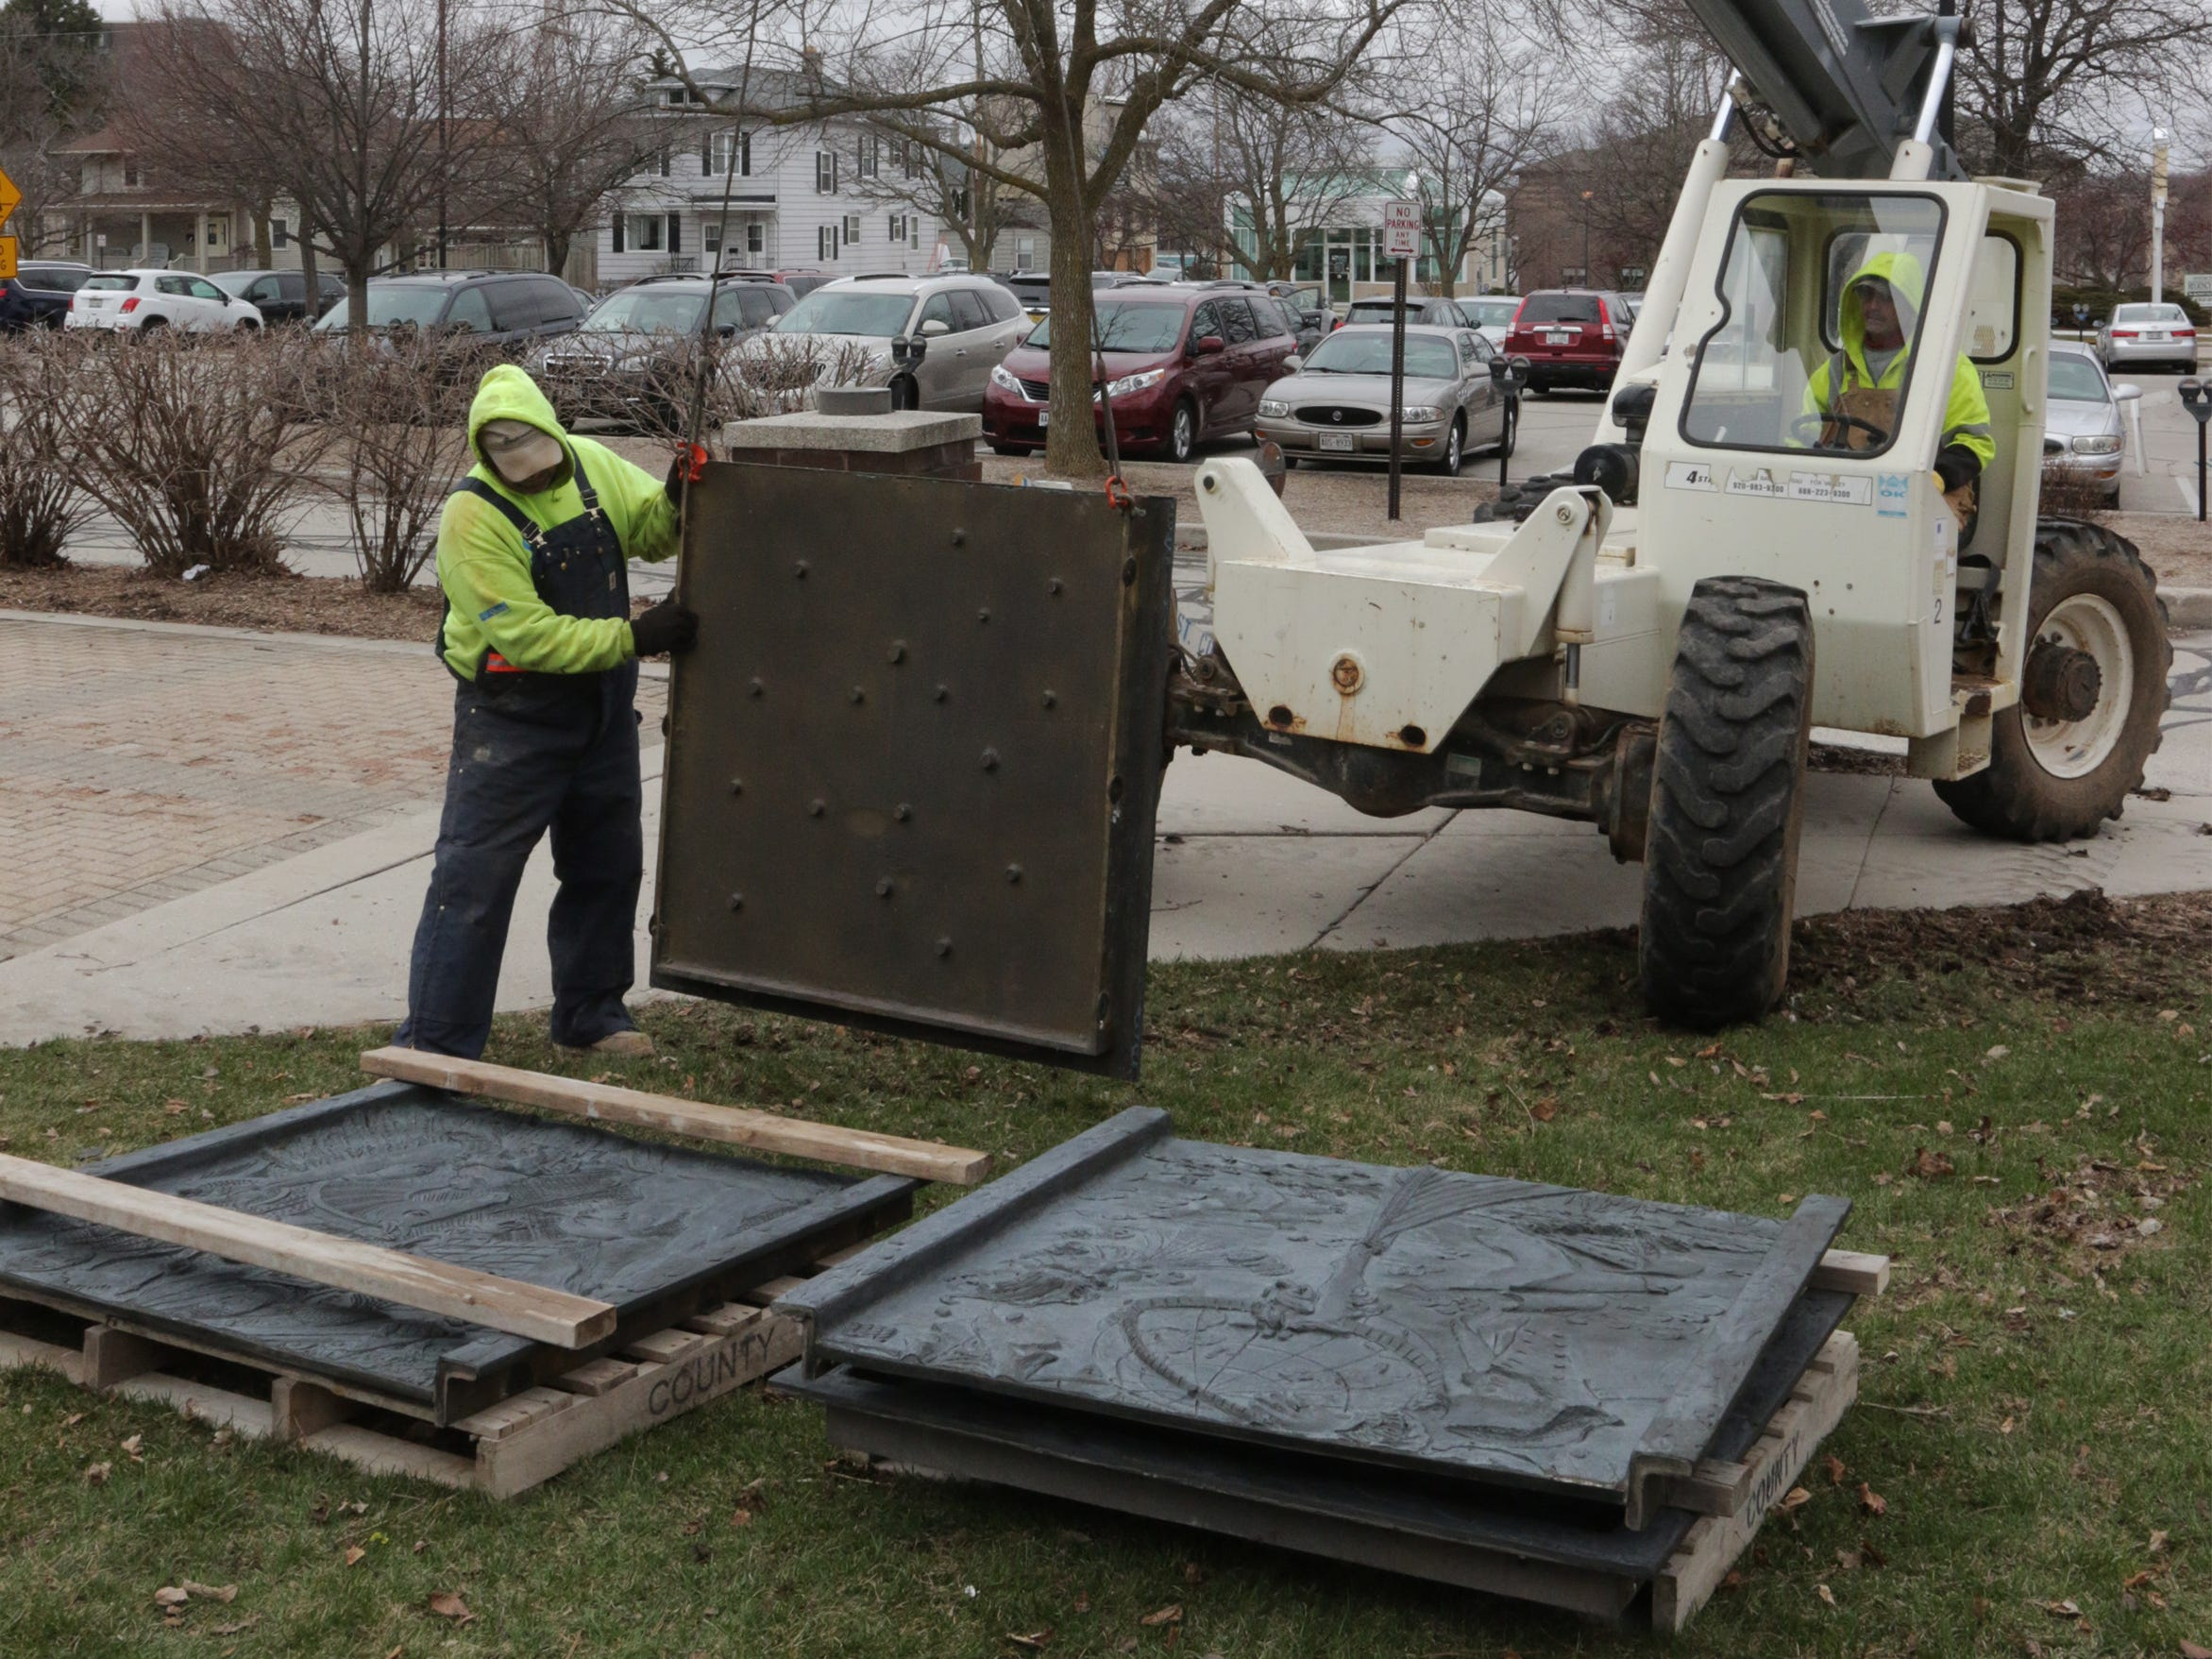 Employees from Koenig Constructions lower the 800-pound cast panels from the clock tower at Mead Public Library, Wednesday April 10, 2019, in Sheboygan, Wis. The city is repurposing the cast panels for an 8th Street display as part of a renovations project.